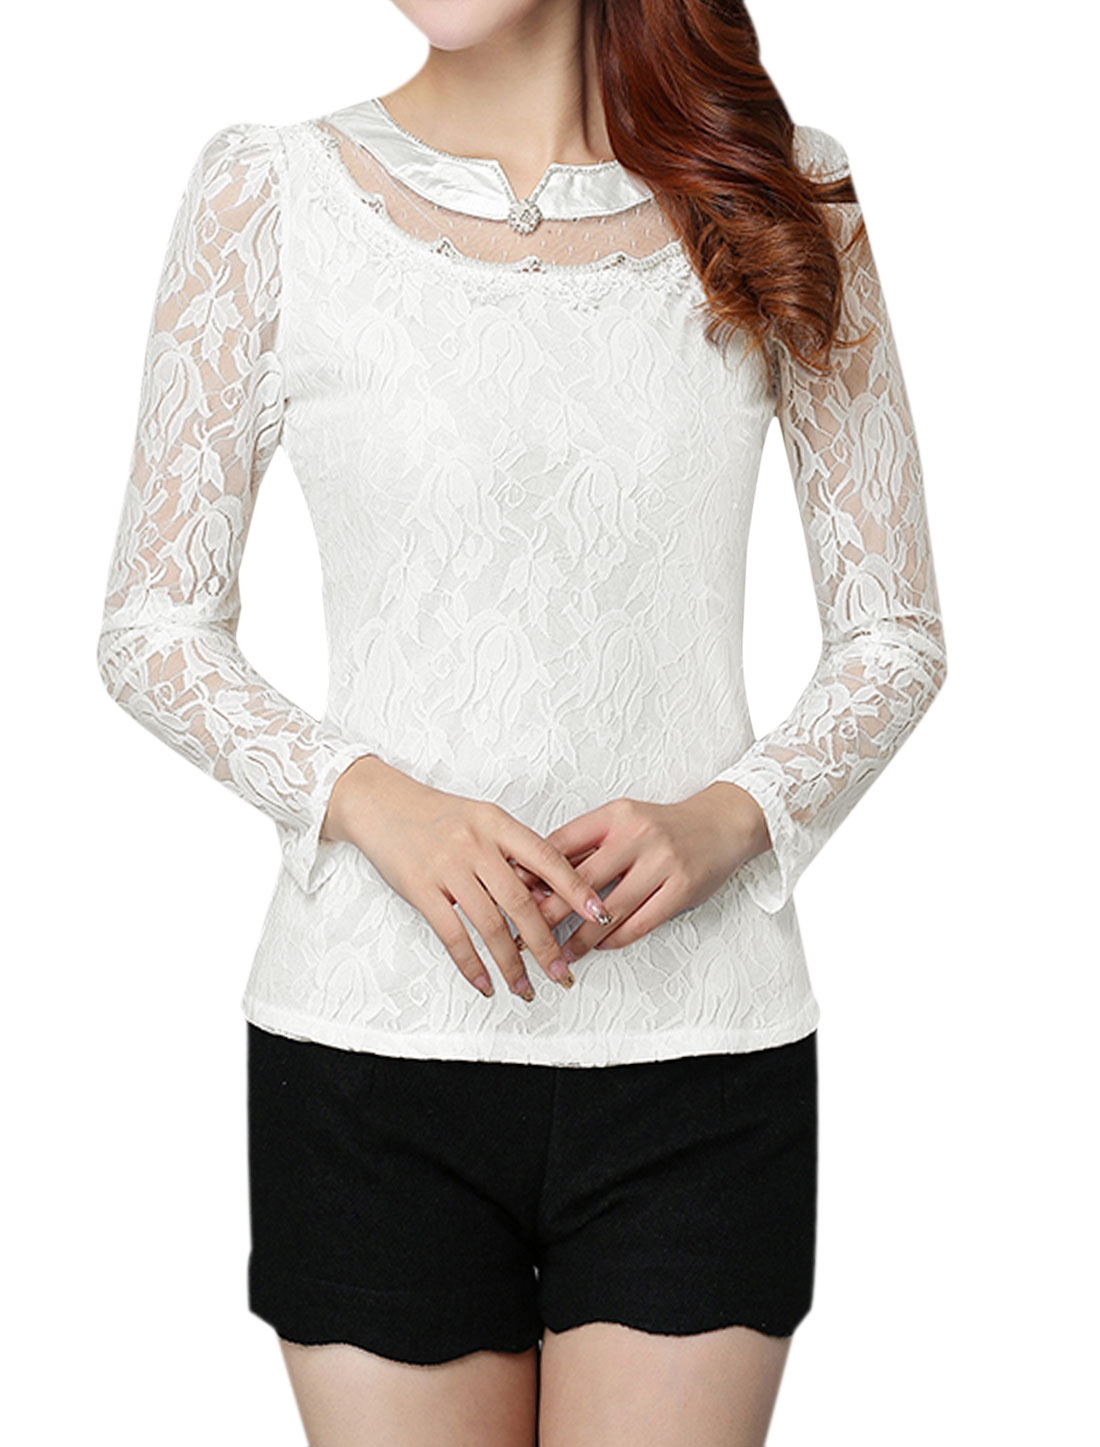 Women Beaded Rhinestone Slim Fit Floral Lace Top White M